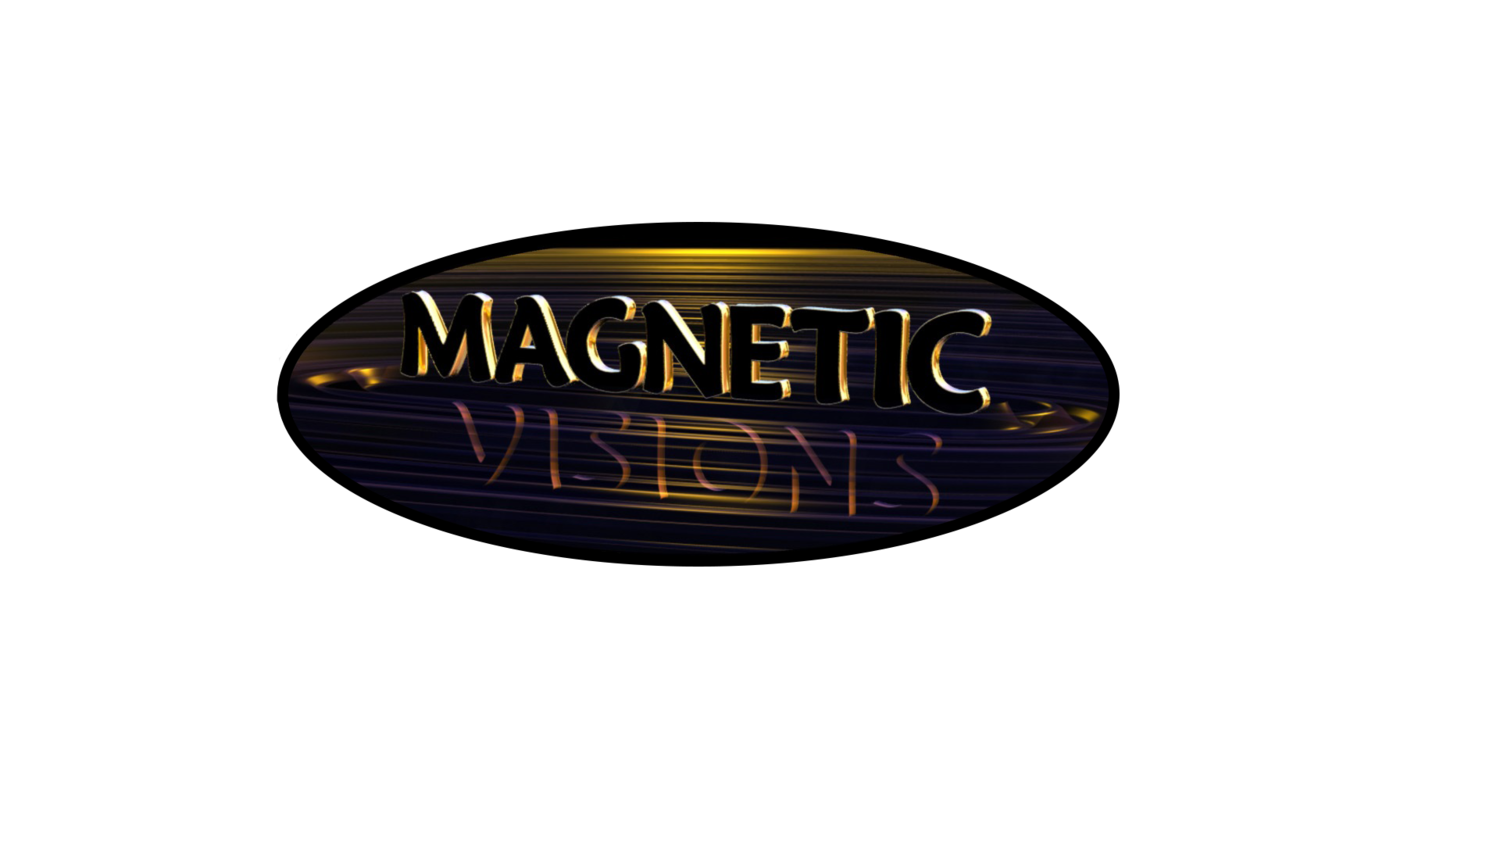 Magnetic Visions